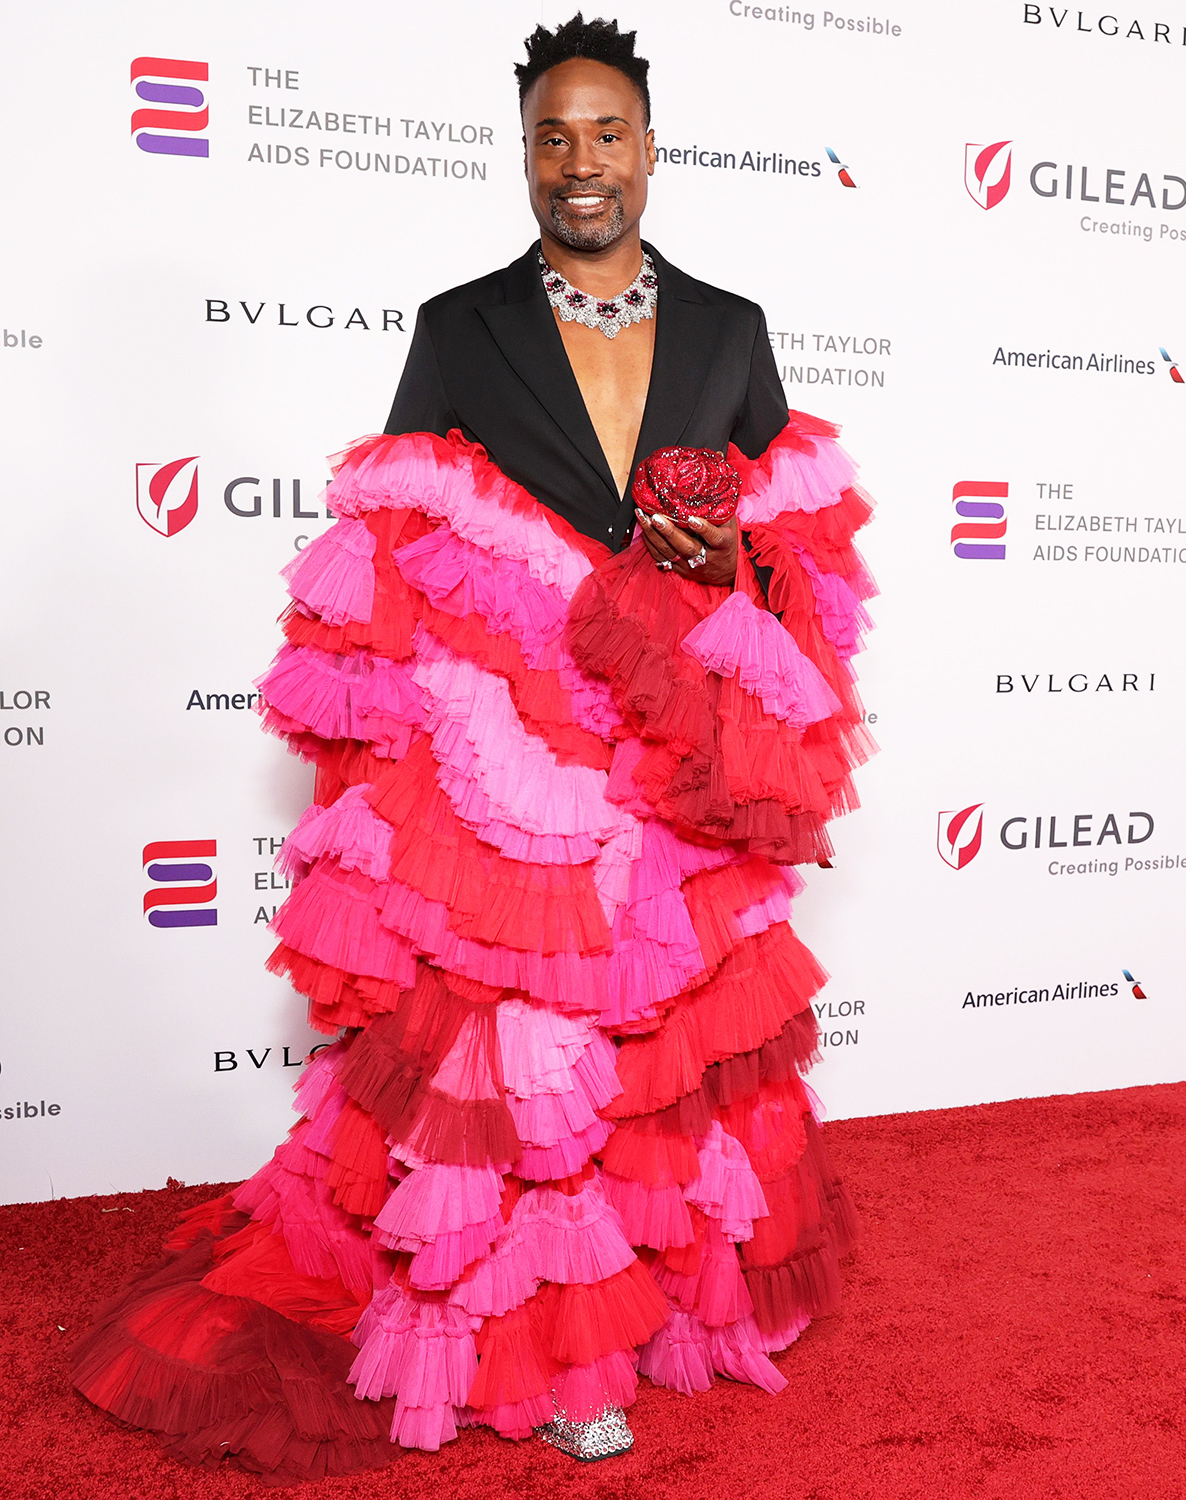 Billy Porter attends The Elizabeth Taylor Ball To End AIDS on September 17, 2021 in West Hollywood, California.